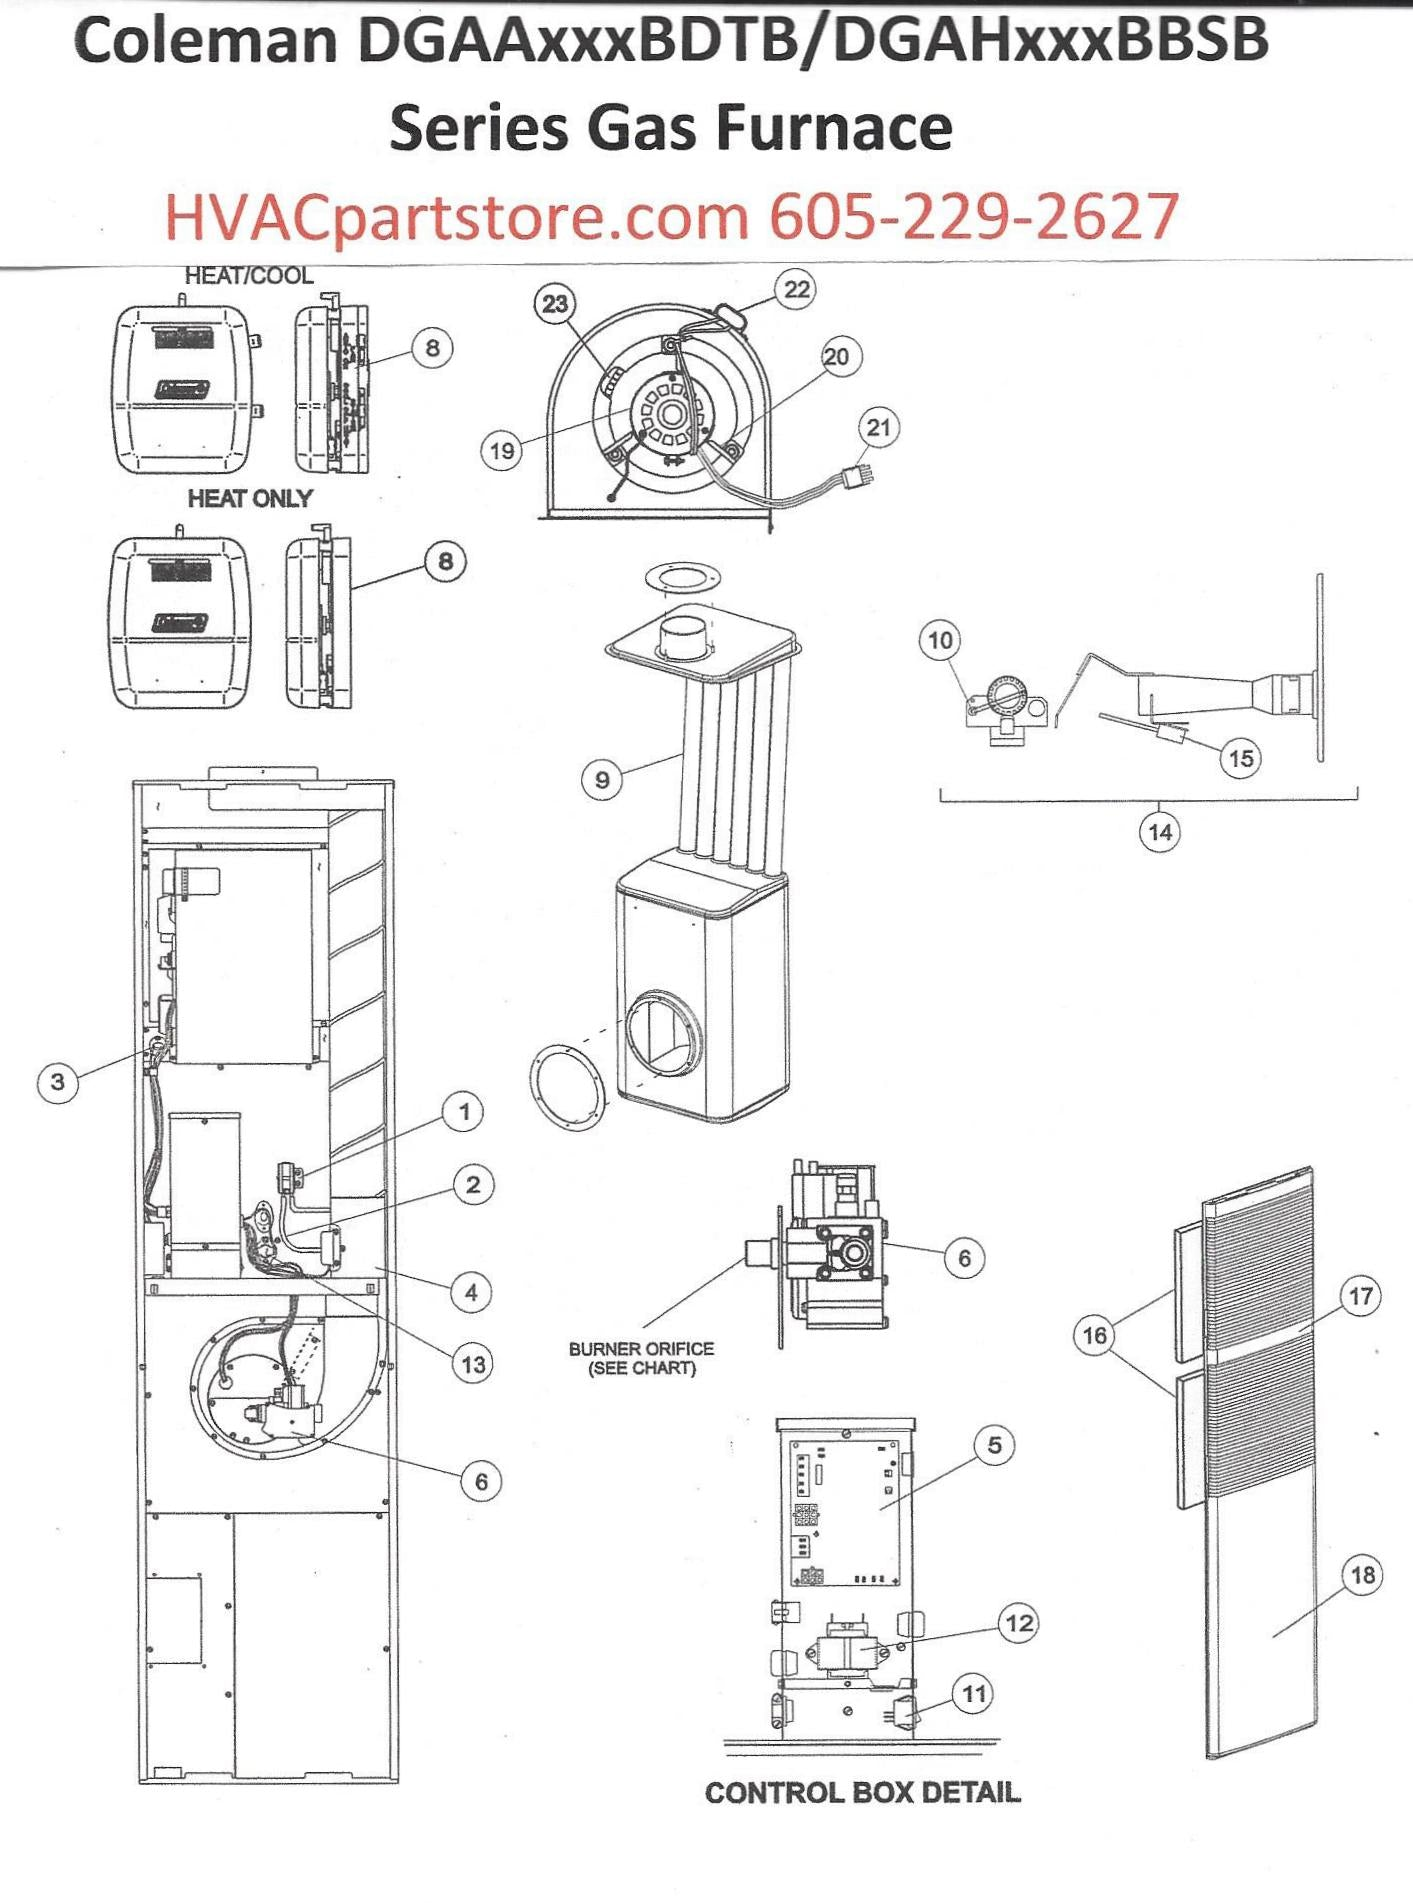 Gas Valve For Furnace Wiring Thermostat together with A in addition 00001 likewise Lennox Furnace Fan Motor Wiring Diagram moreover HVAC Manuals. on rheem gas furnace wiring diagram